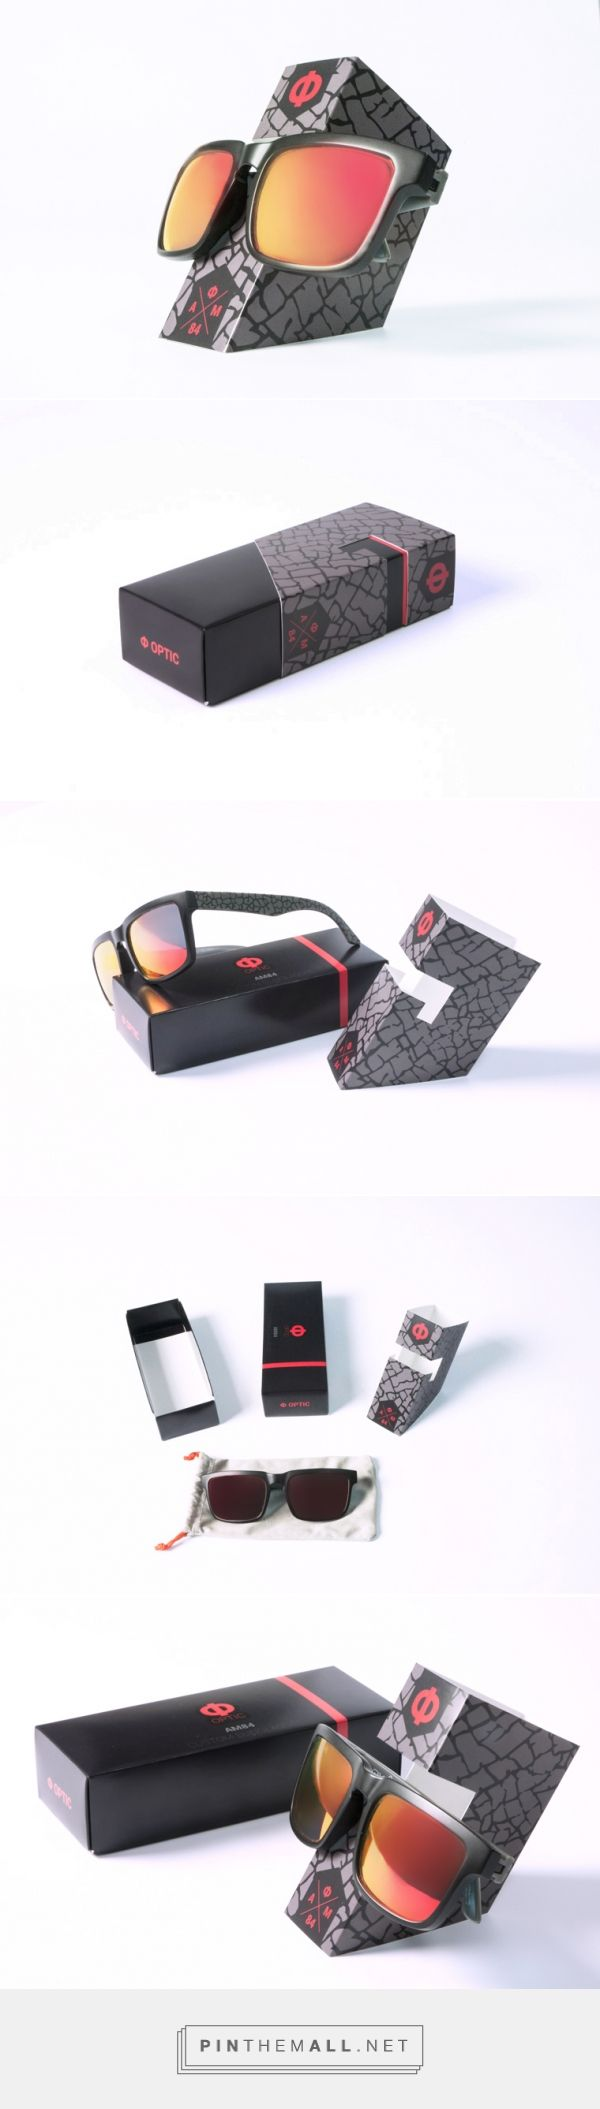 Fashion - #Custom #sunglasses clever #packaging #design: a #box that turns into a #eyeglasses #holder